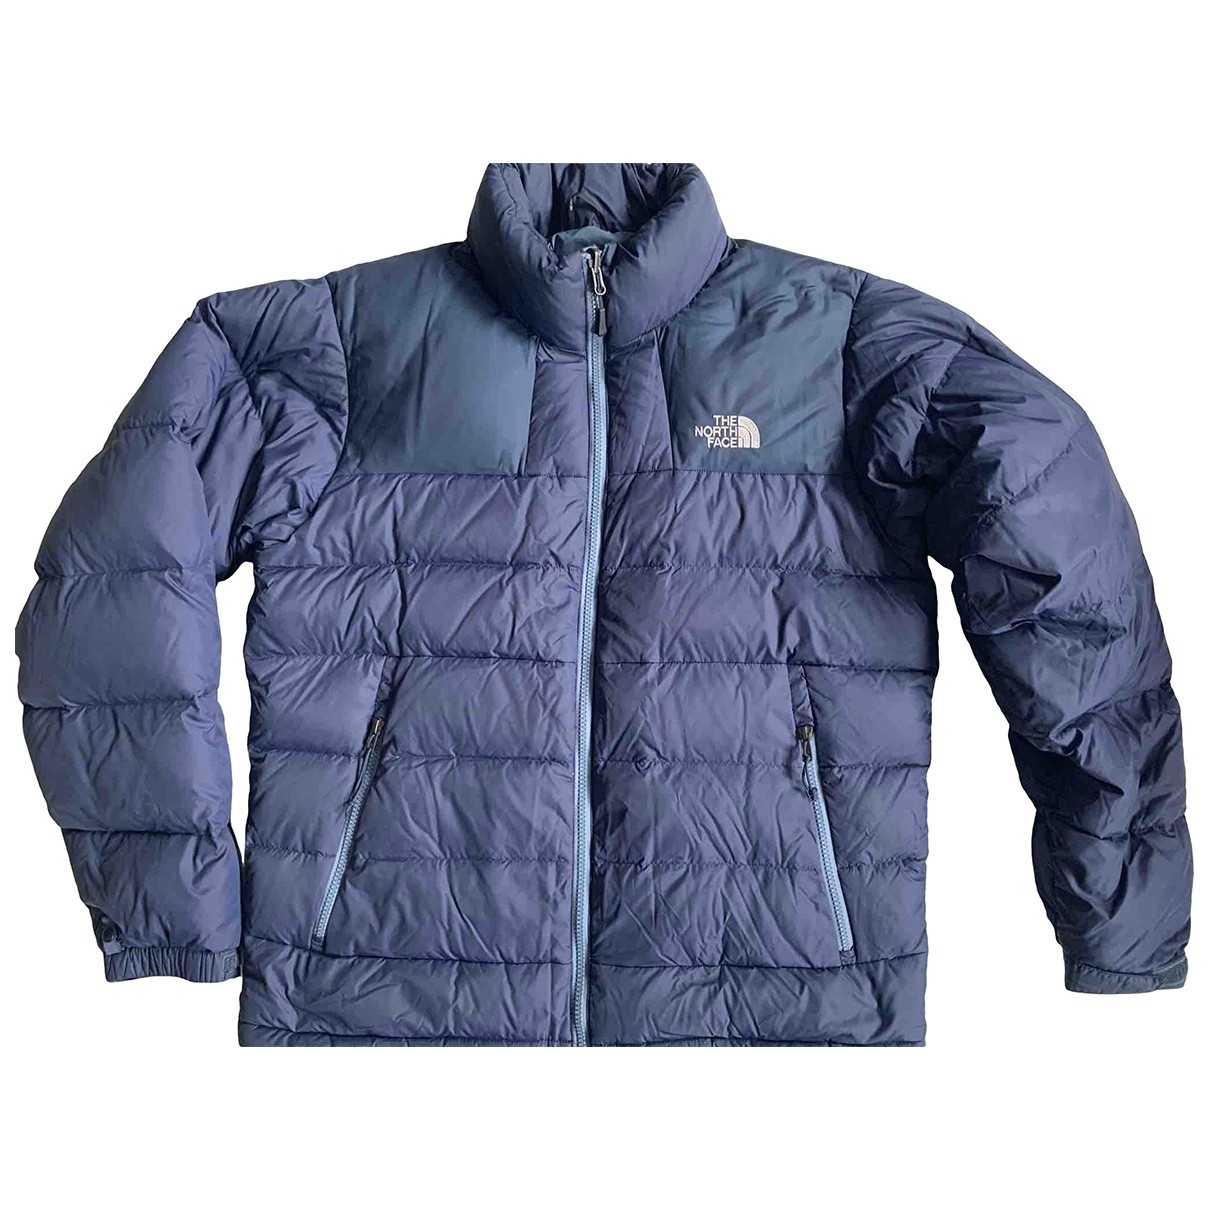 The North Face \N Jacke in  Marine Polyester